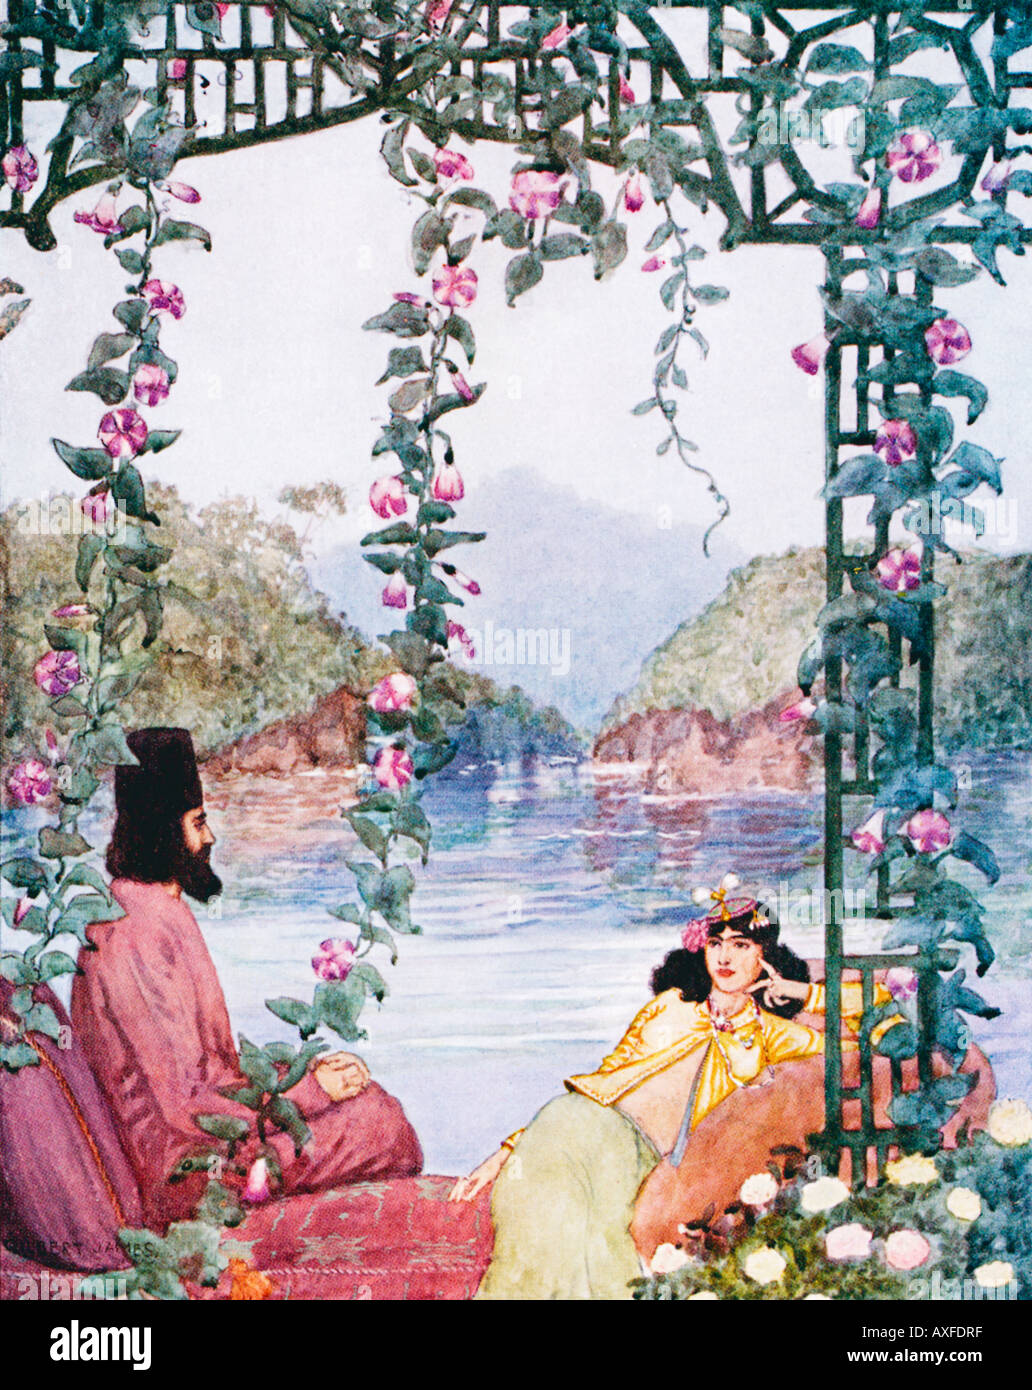 Rubaiyat Omar Khayyam The Garden illustration by Gilbert James from a 1909 edition of the Persian classic - Stock Image